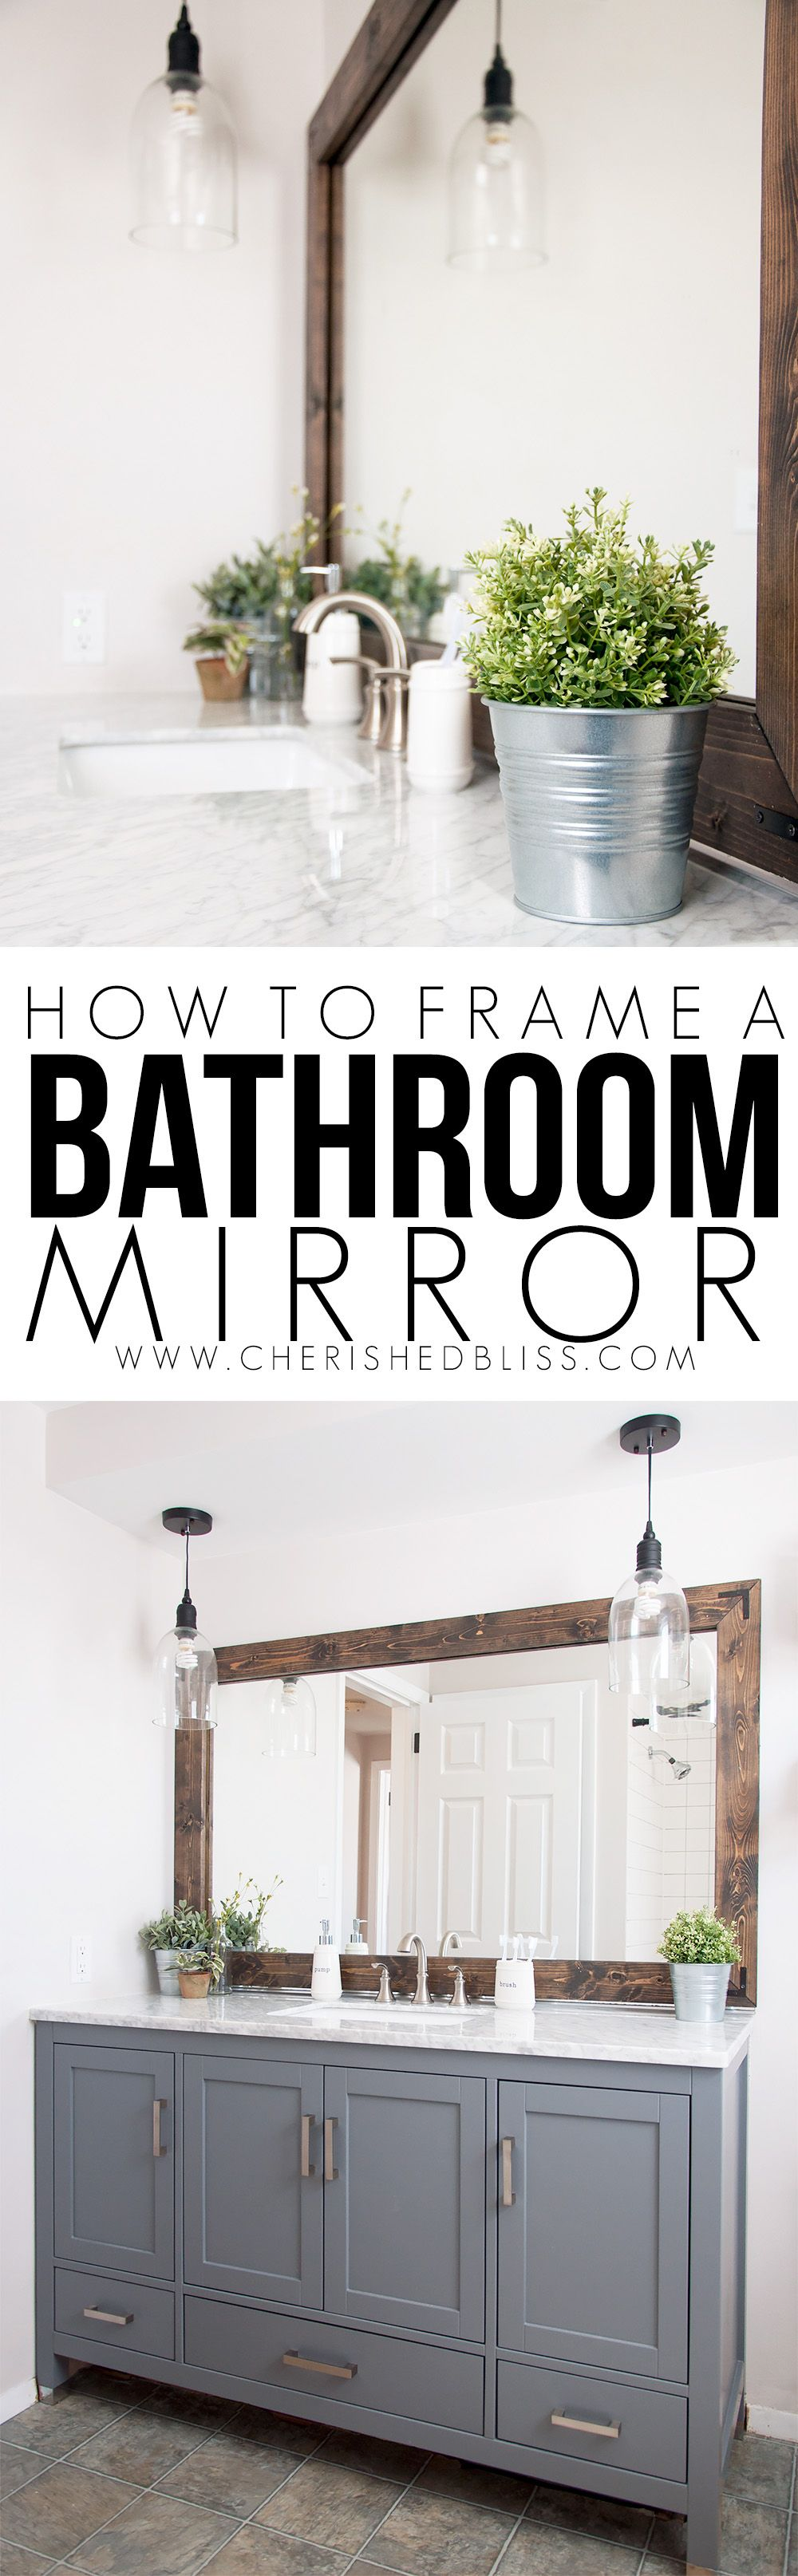 How to Frame a Bathroom Mirror | home improvements | Pinterest ...